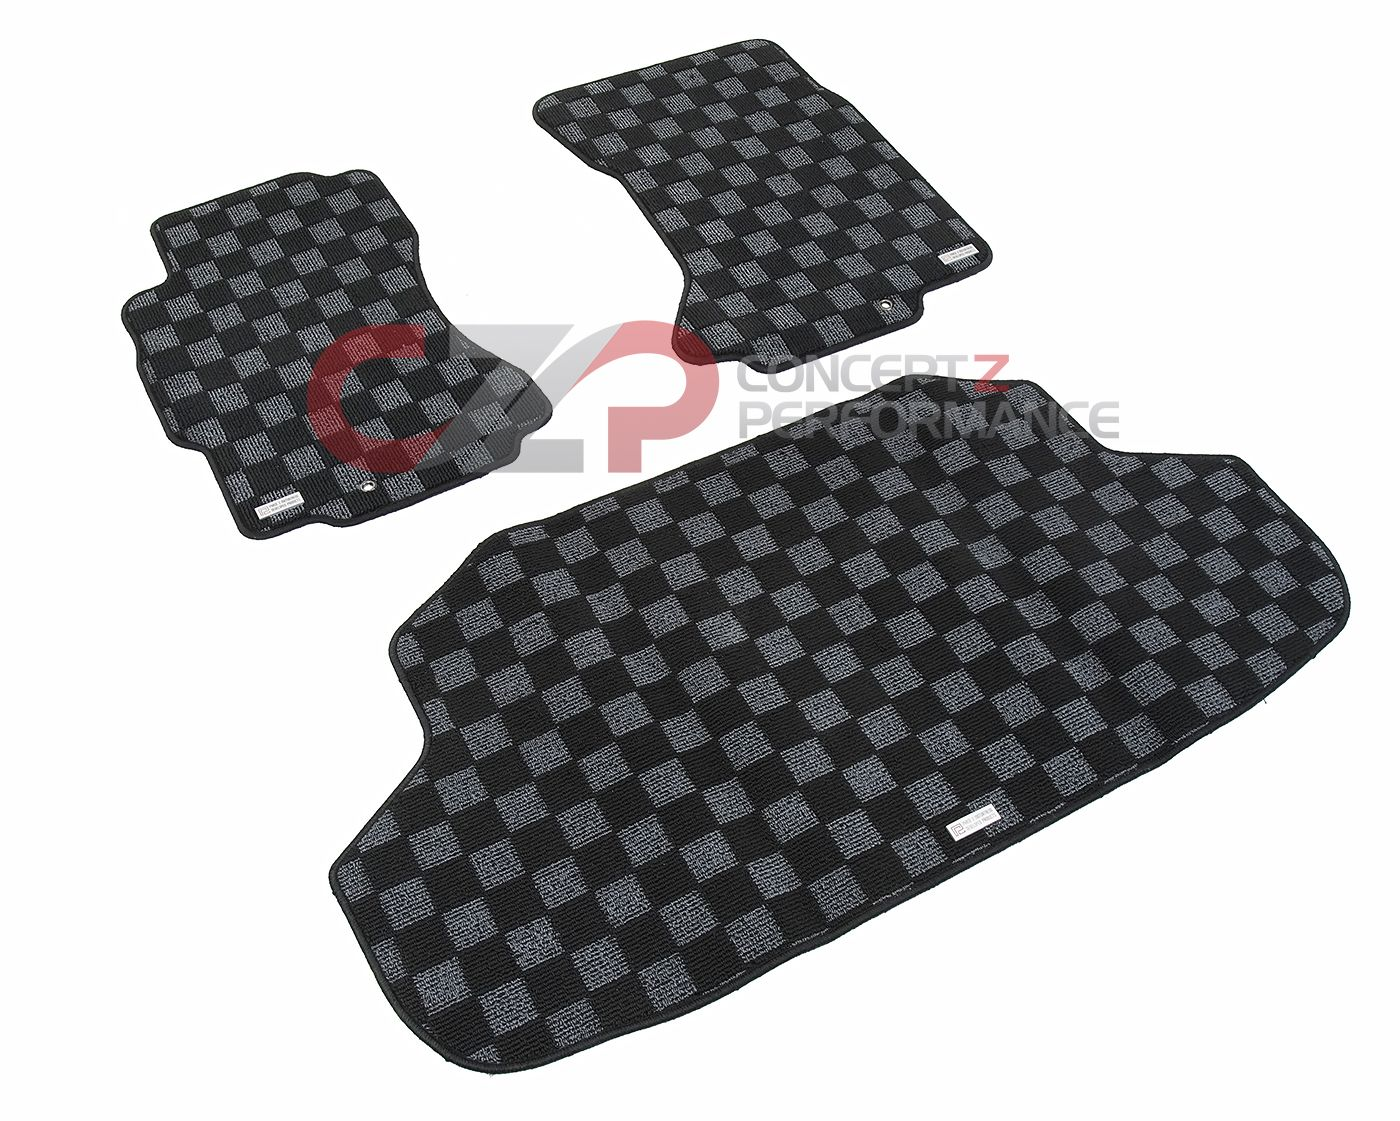 P2M Checkerboard Carpet Set, Black & Dark Gray Front Floor Mats + Trunk Mat - Nissan 300ZX Z32